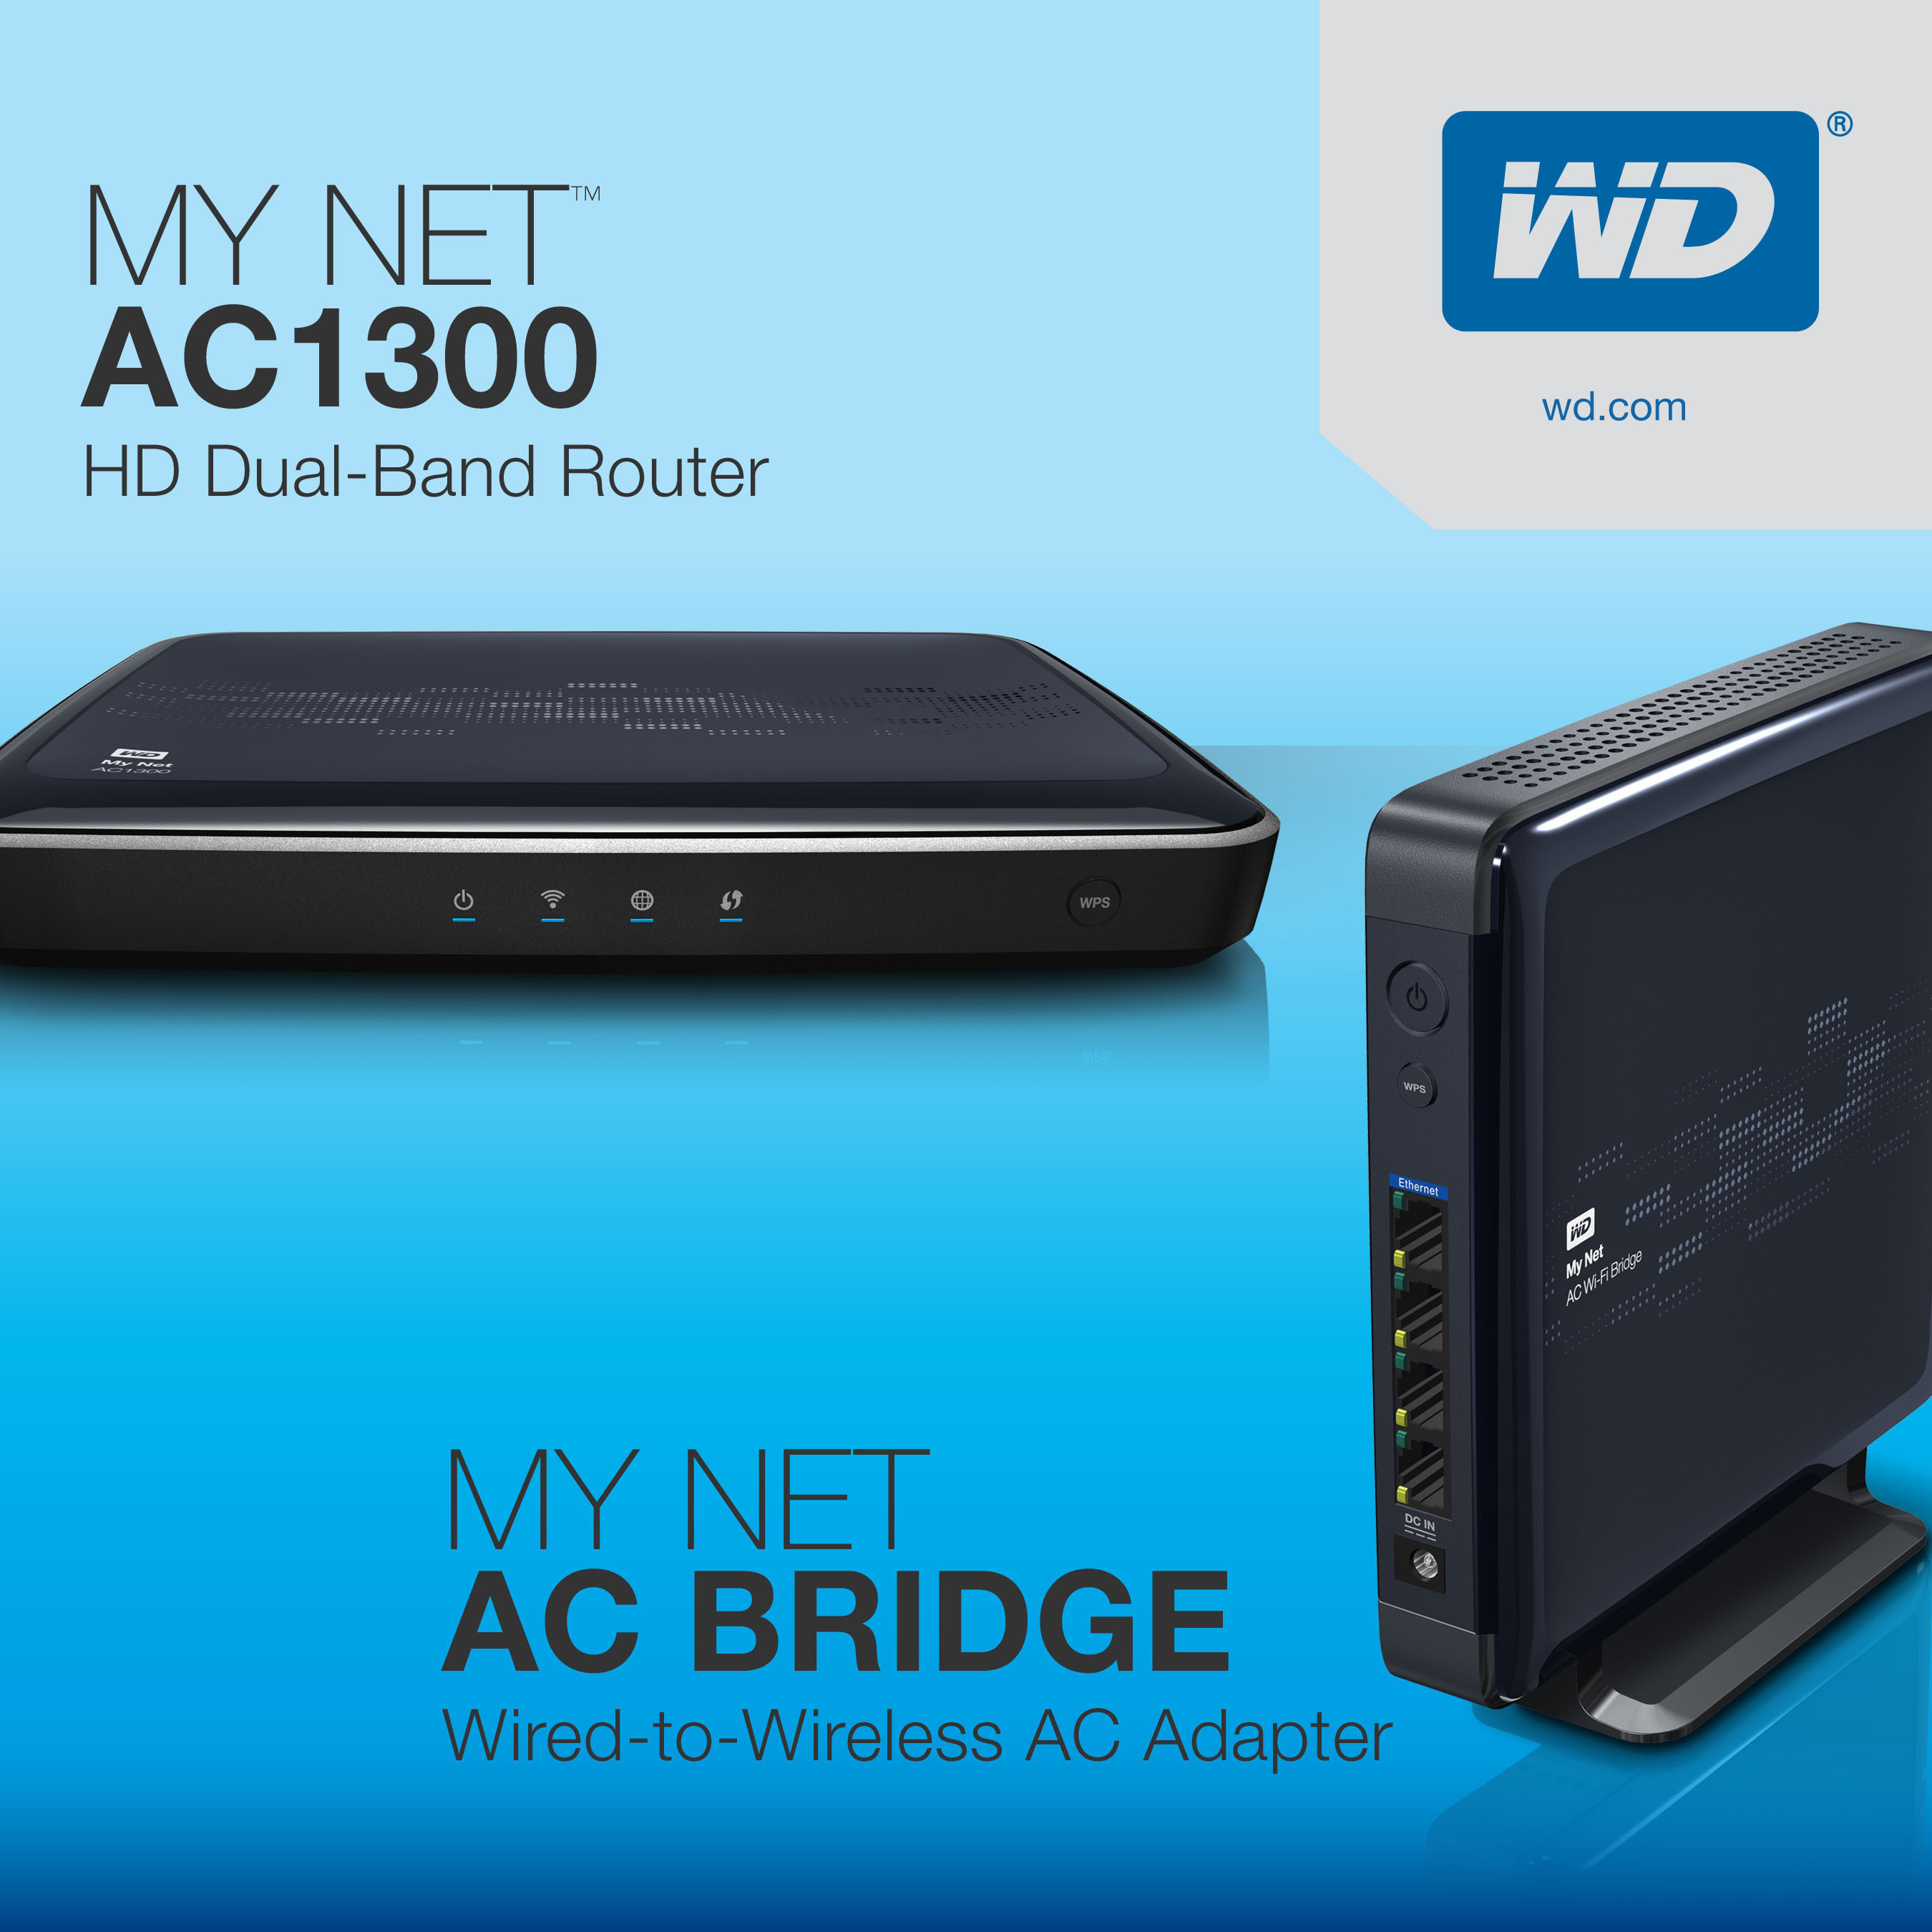 The new My Net 802.11ac router and media bridge from WD.